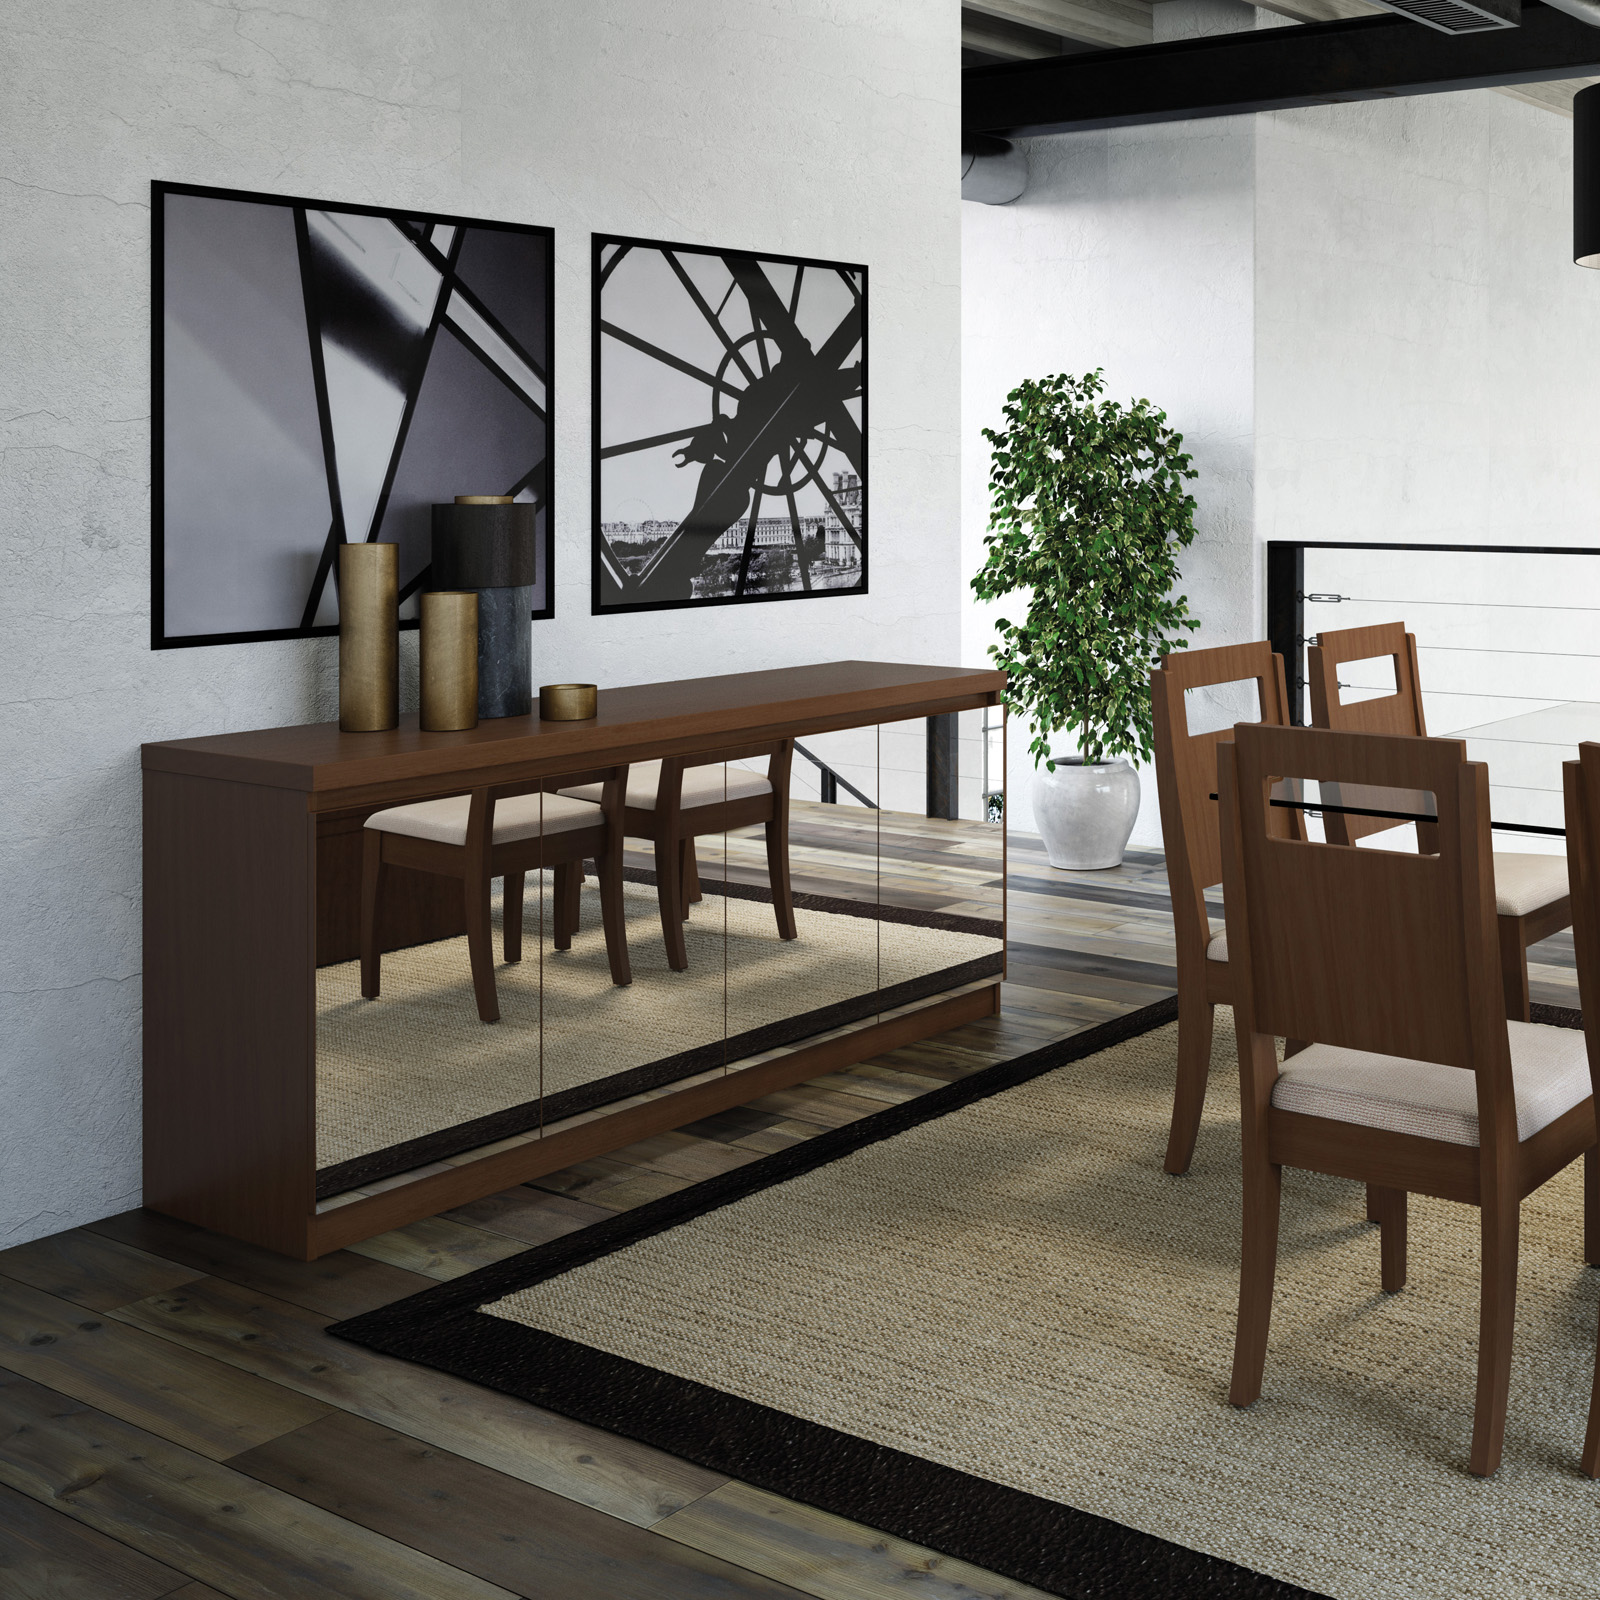 A r t furniture greenpoint oval dining table in coffee bean - A R T Furniture Greenpoint Oval Dining Table In Coffee Bean 37